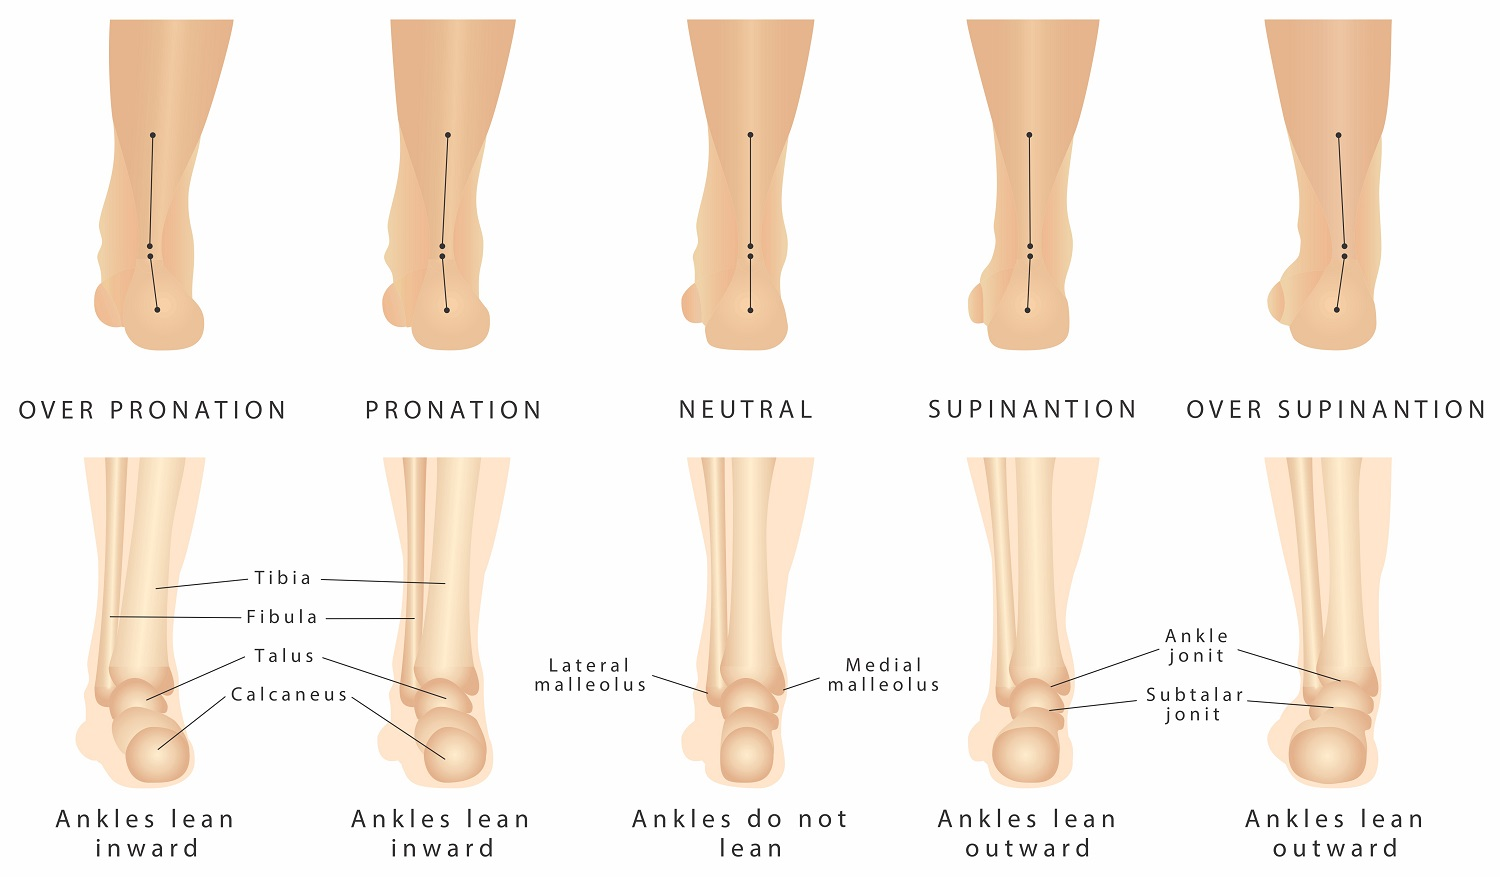 Orthotics can improve alignment of the foot by providing support. Orthotics can help with Pronation and Supination by creating a neautral foot.